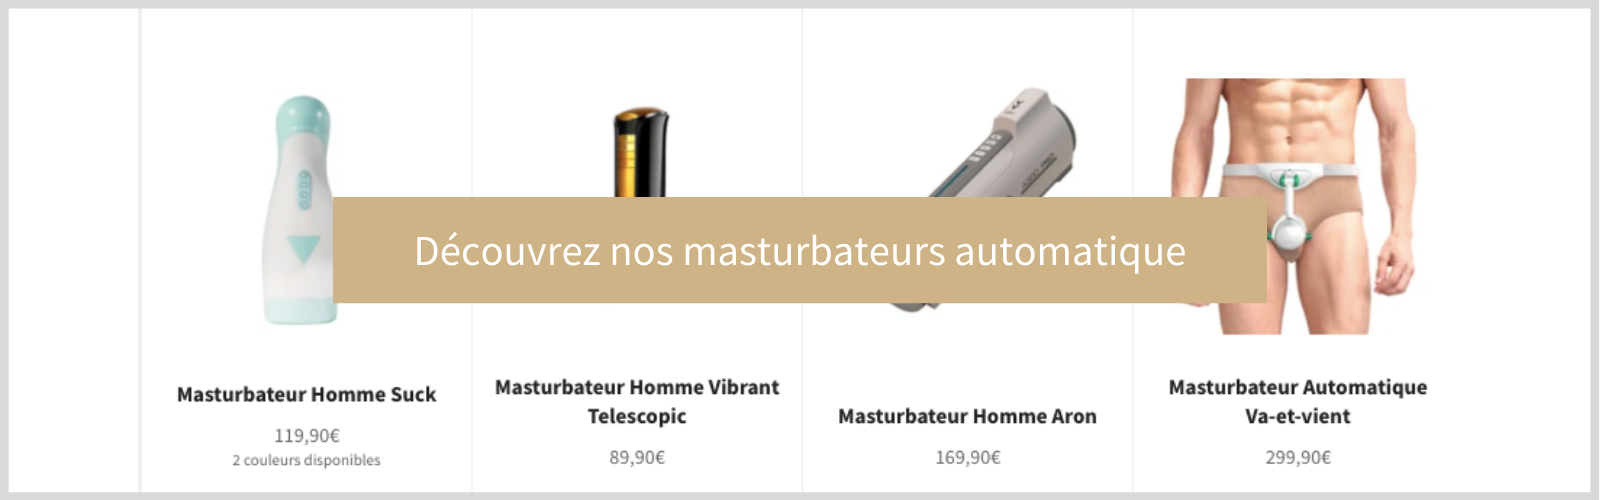 masturbateur masculin vaginette automatique